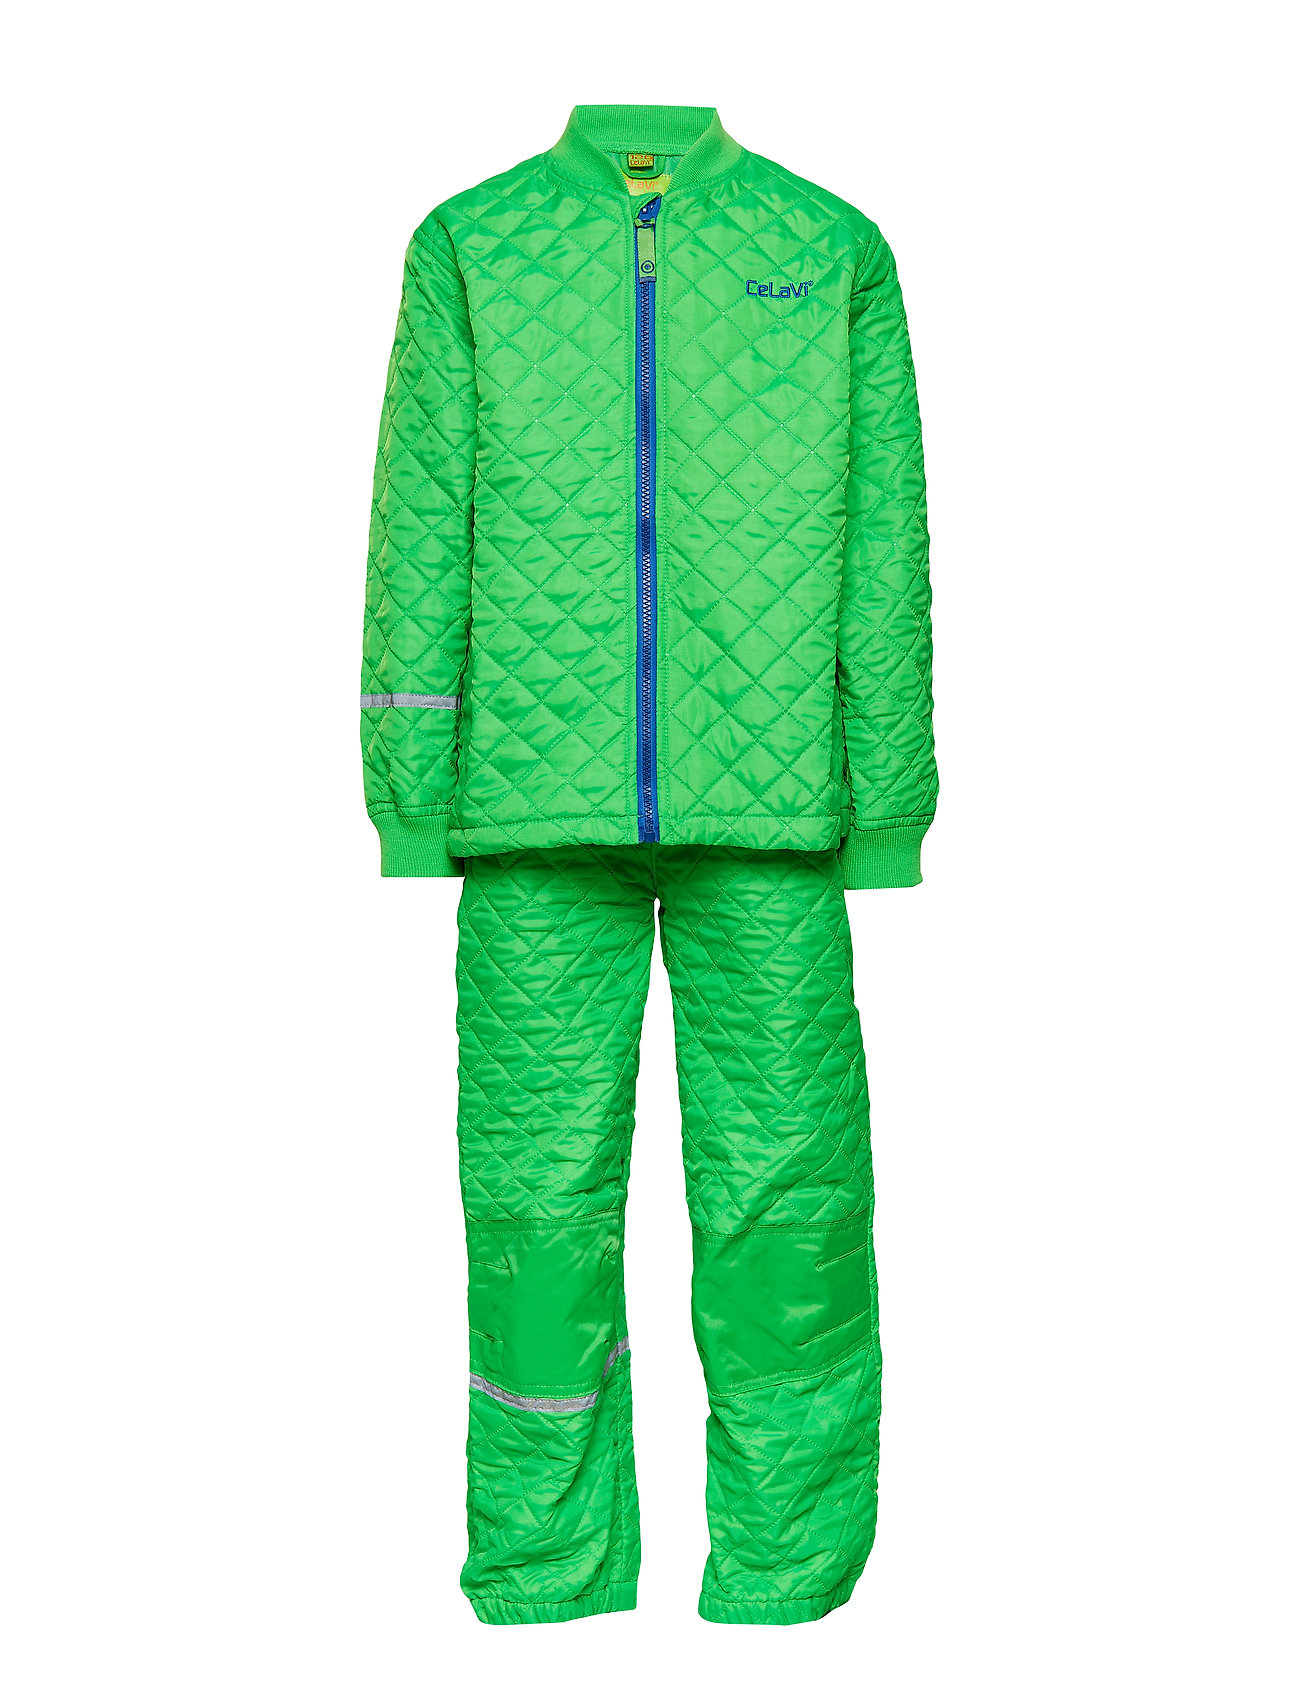 Image of Thermal Set -Solid Outerwear Thermo Outerwear Grøn CeLaVi (2382468365)